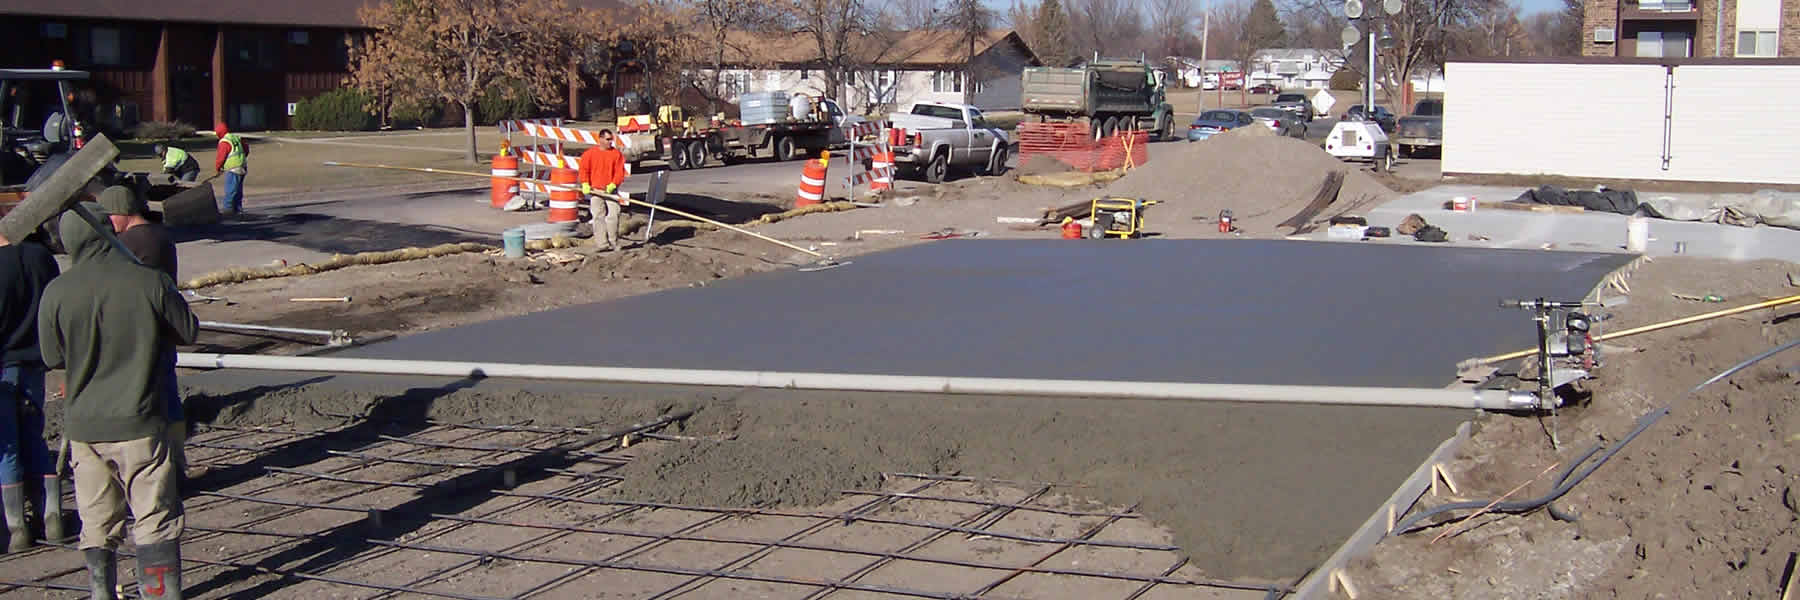 Purchase a Lura Screed to be able to accomplish wide concrete pouring.